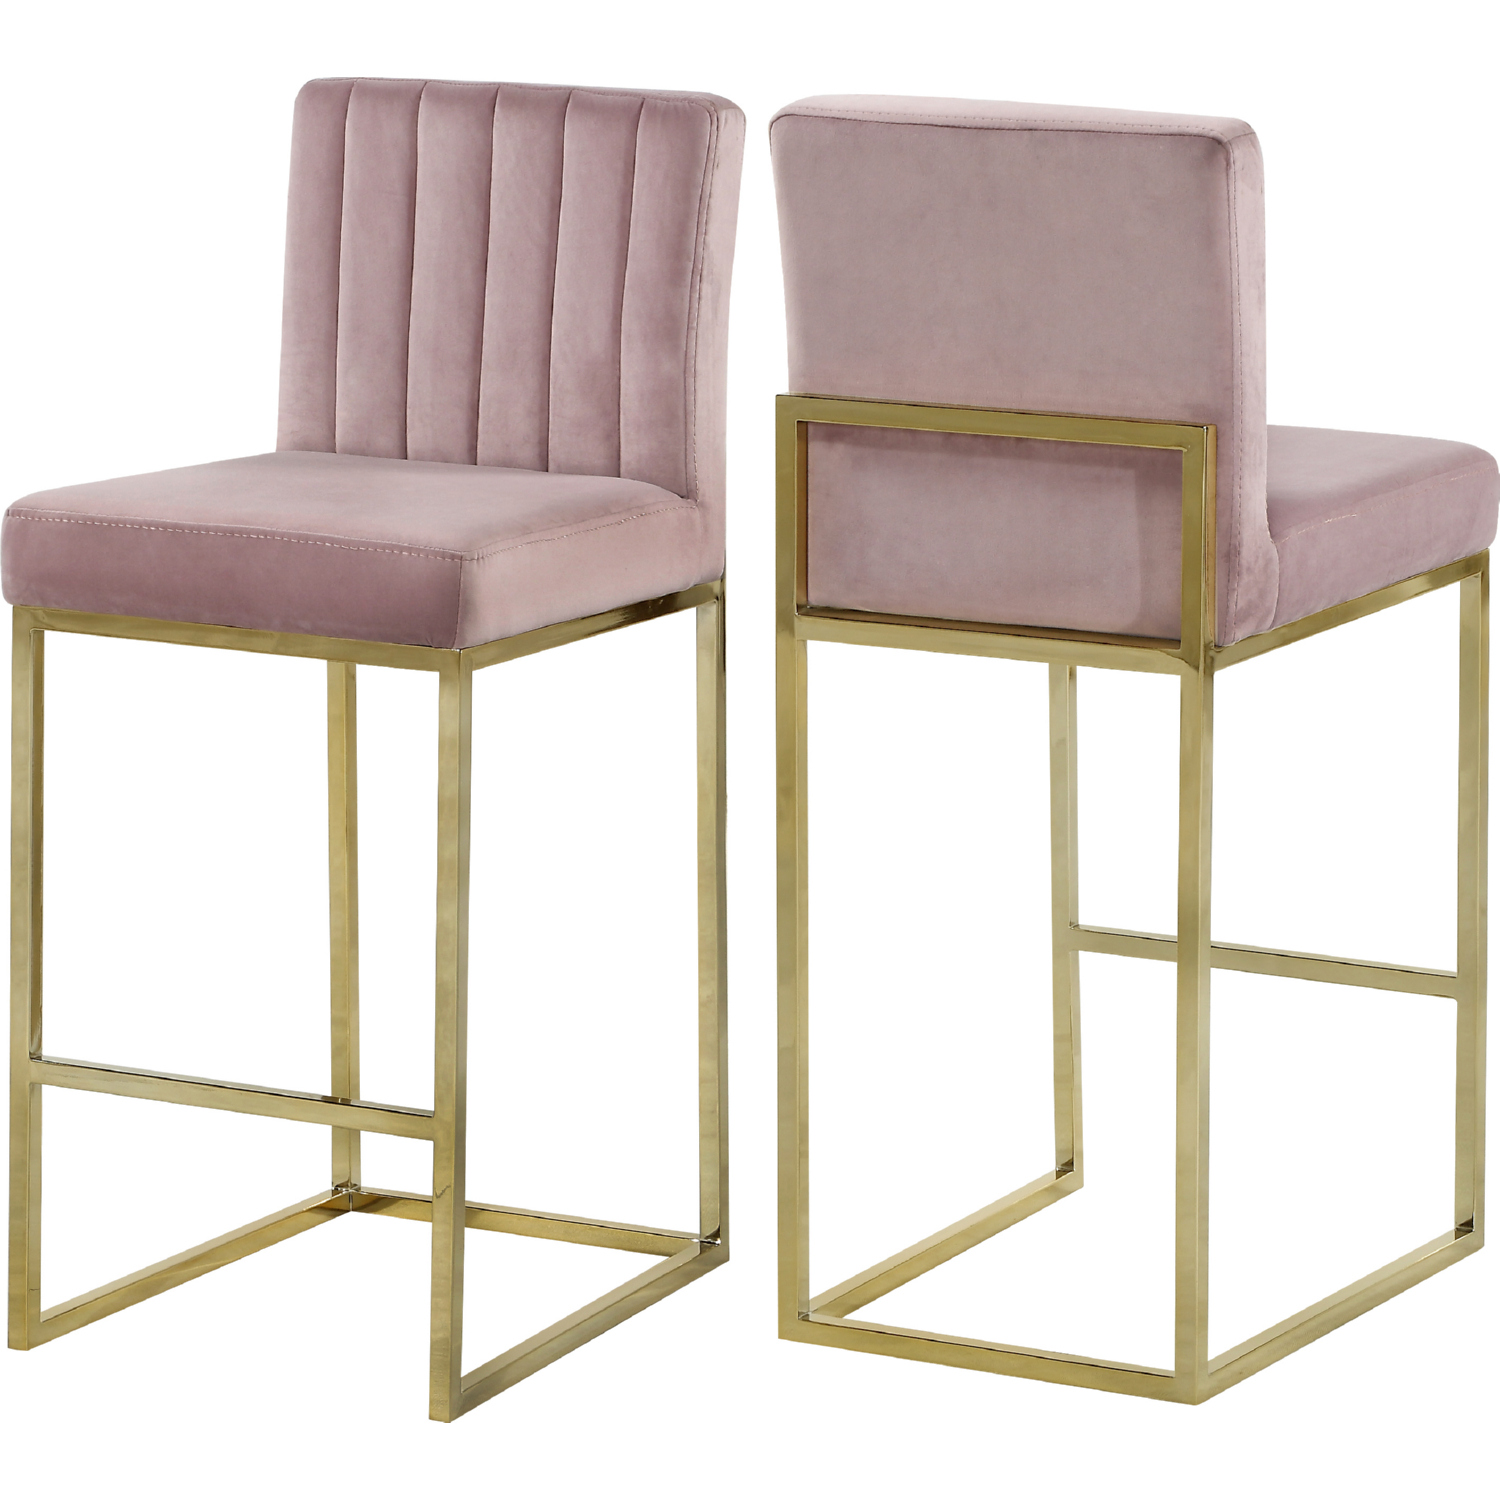 watch 2c937 49117 Giselle Counter Stool in Channel Tufted Pink Velvet on Gold by Meridian  Furniture